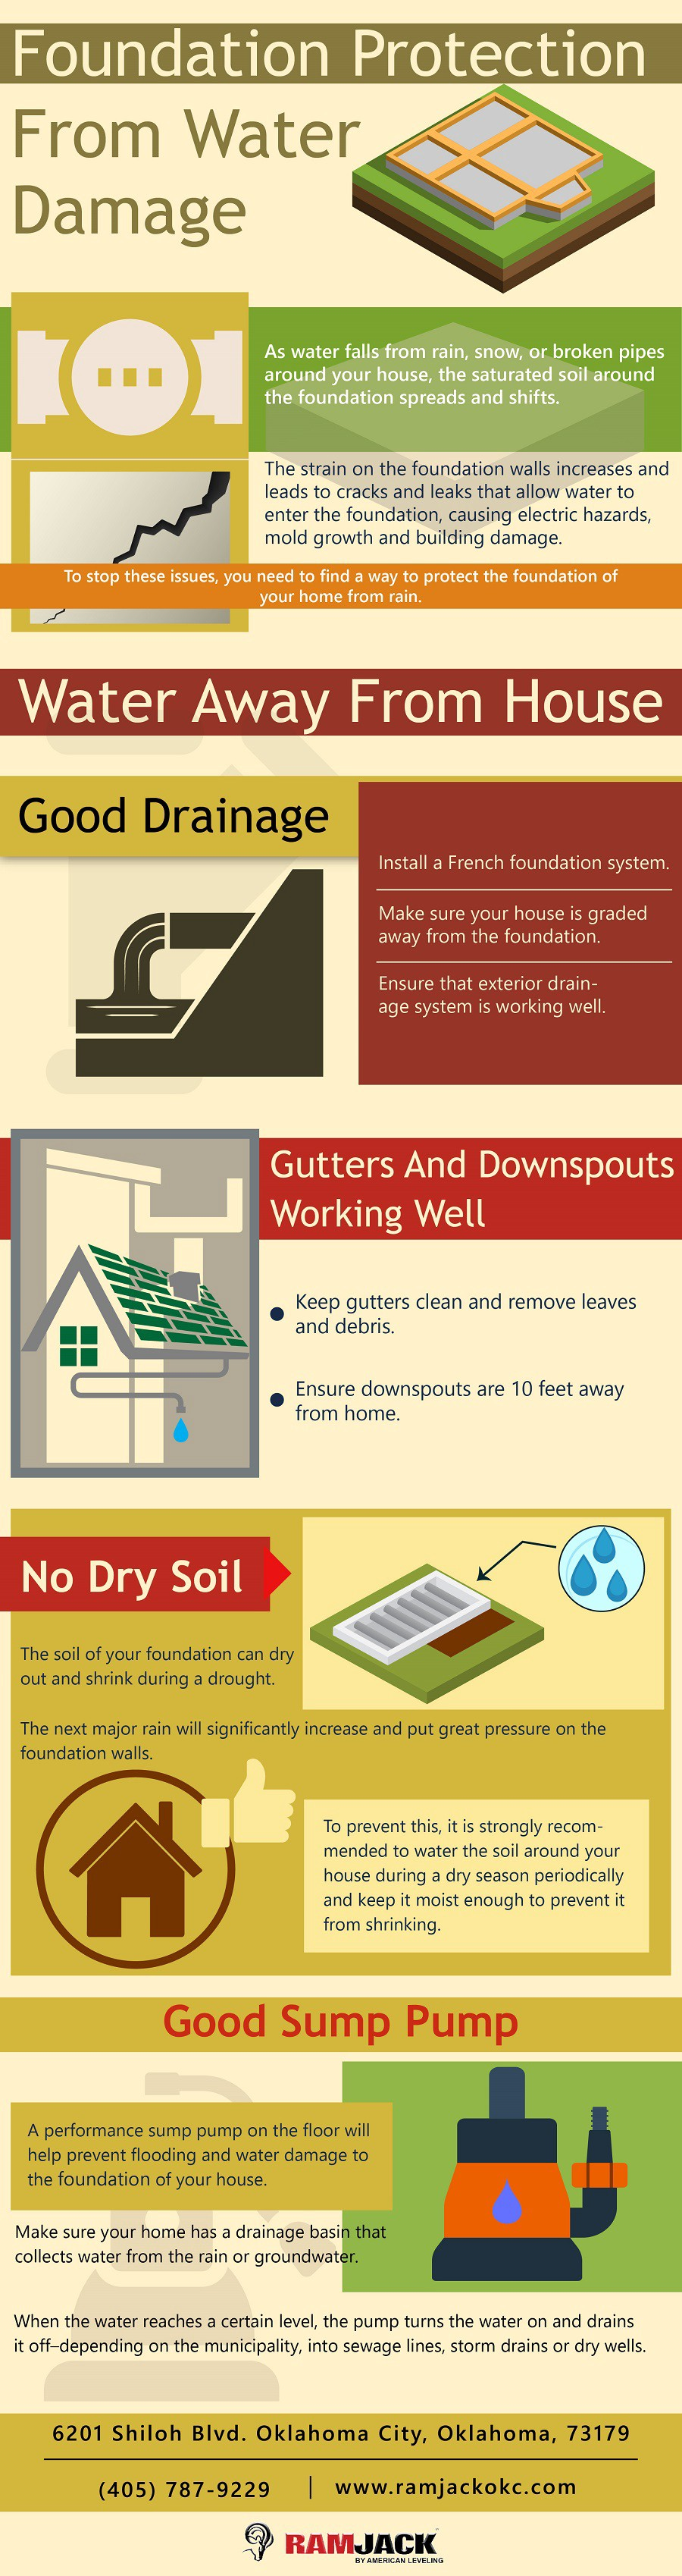 Foundation Protection From Water Damage Infographic Ram Jack Okc By Cindy Stacy Medium